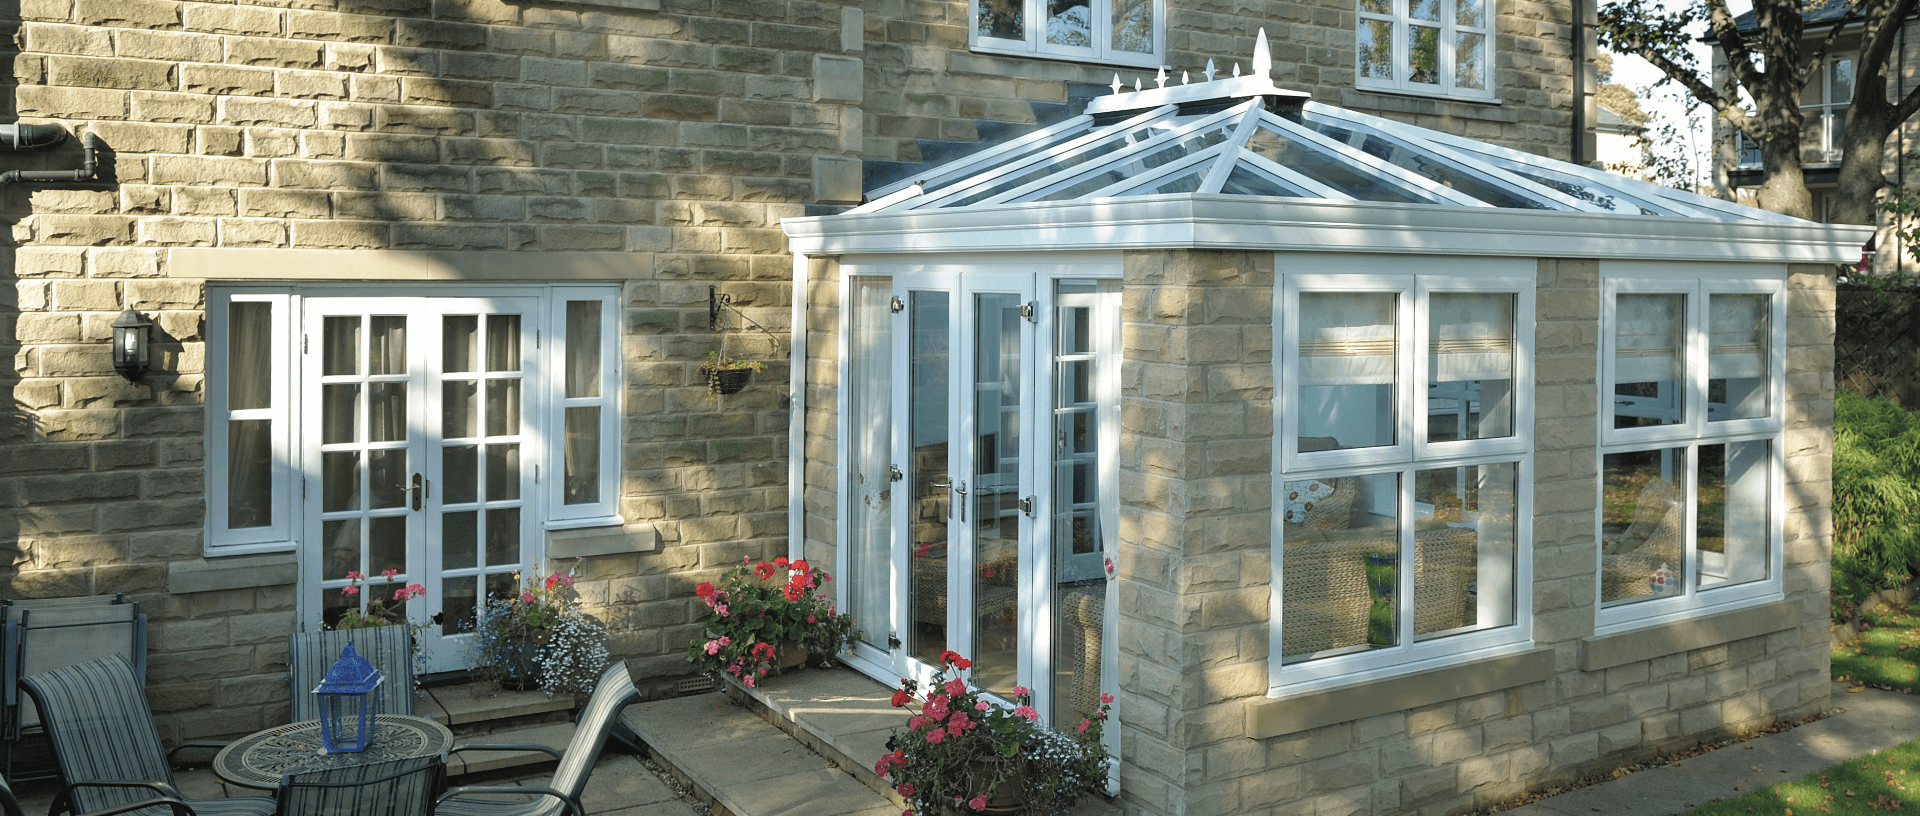 Modern Edwardian conservatory with brick walls and French doors